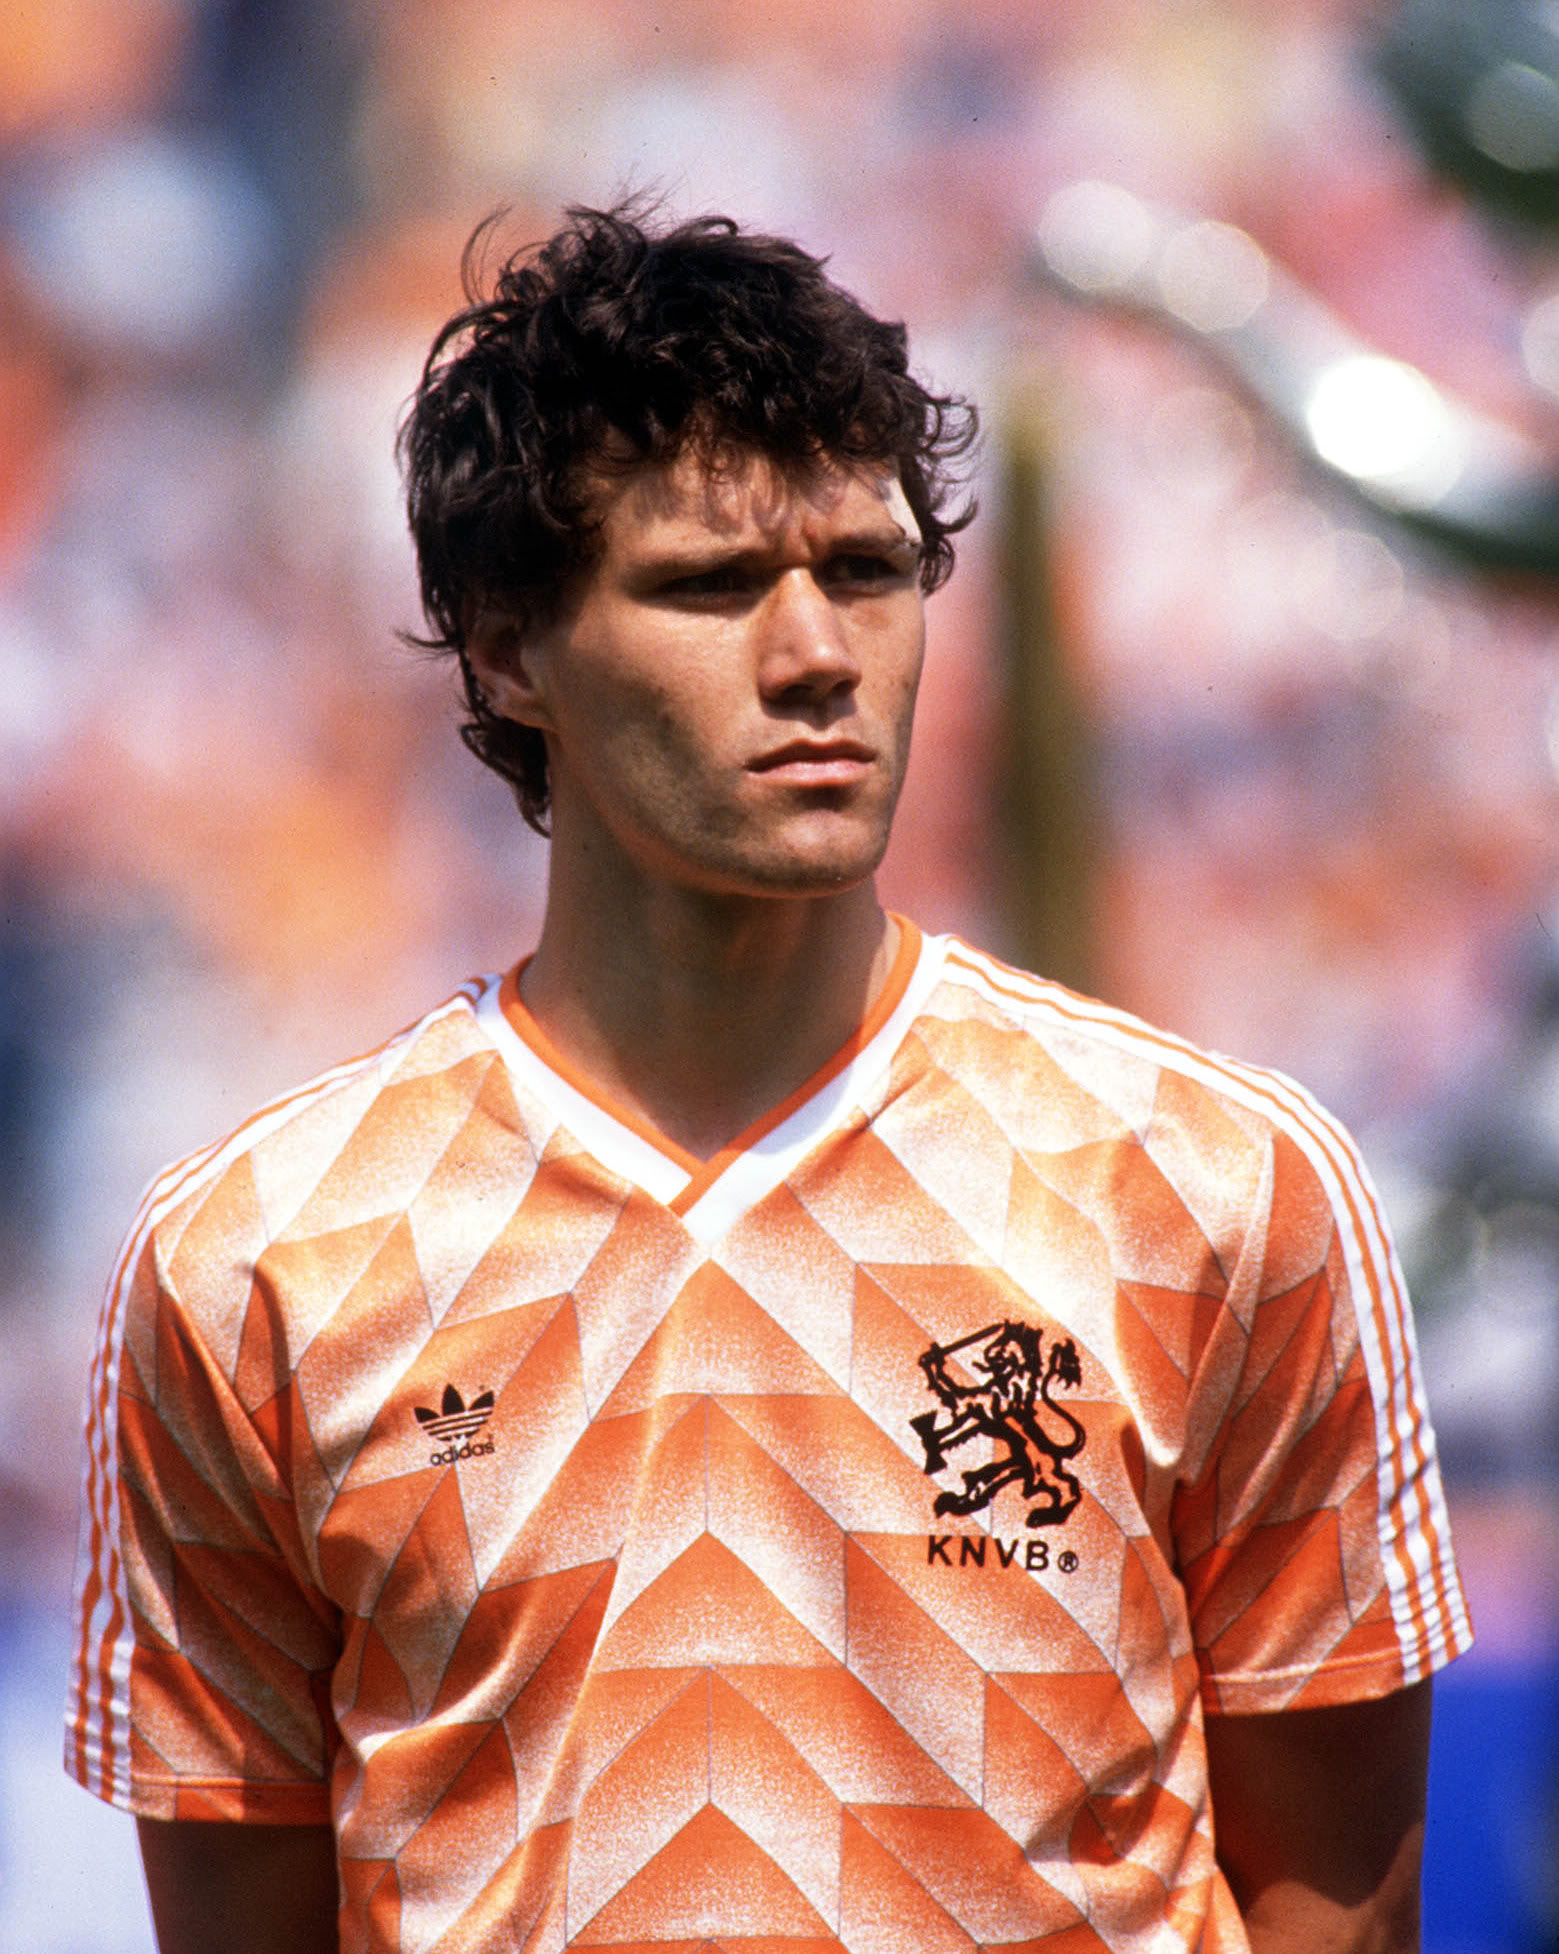 Marco van Basten: biography, photos and achievements 75